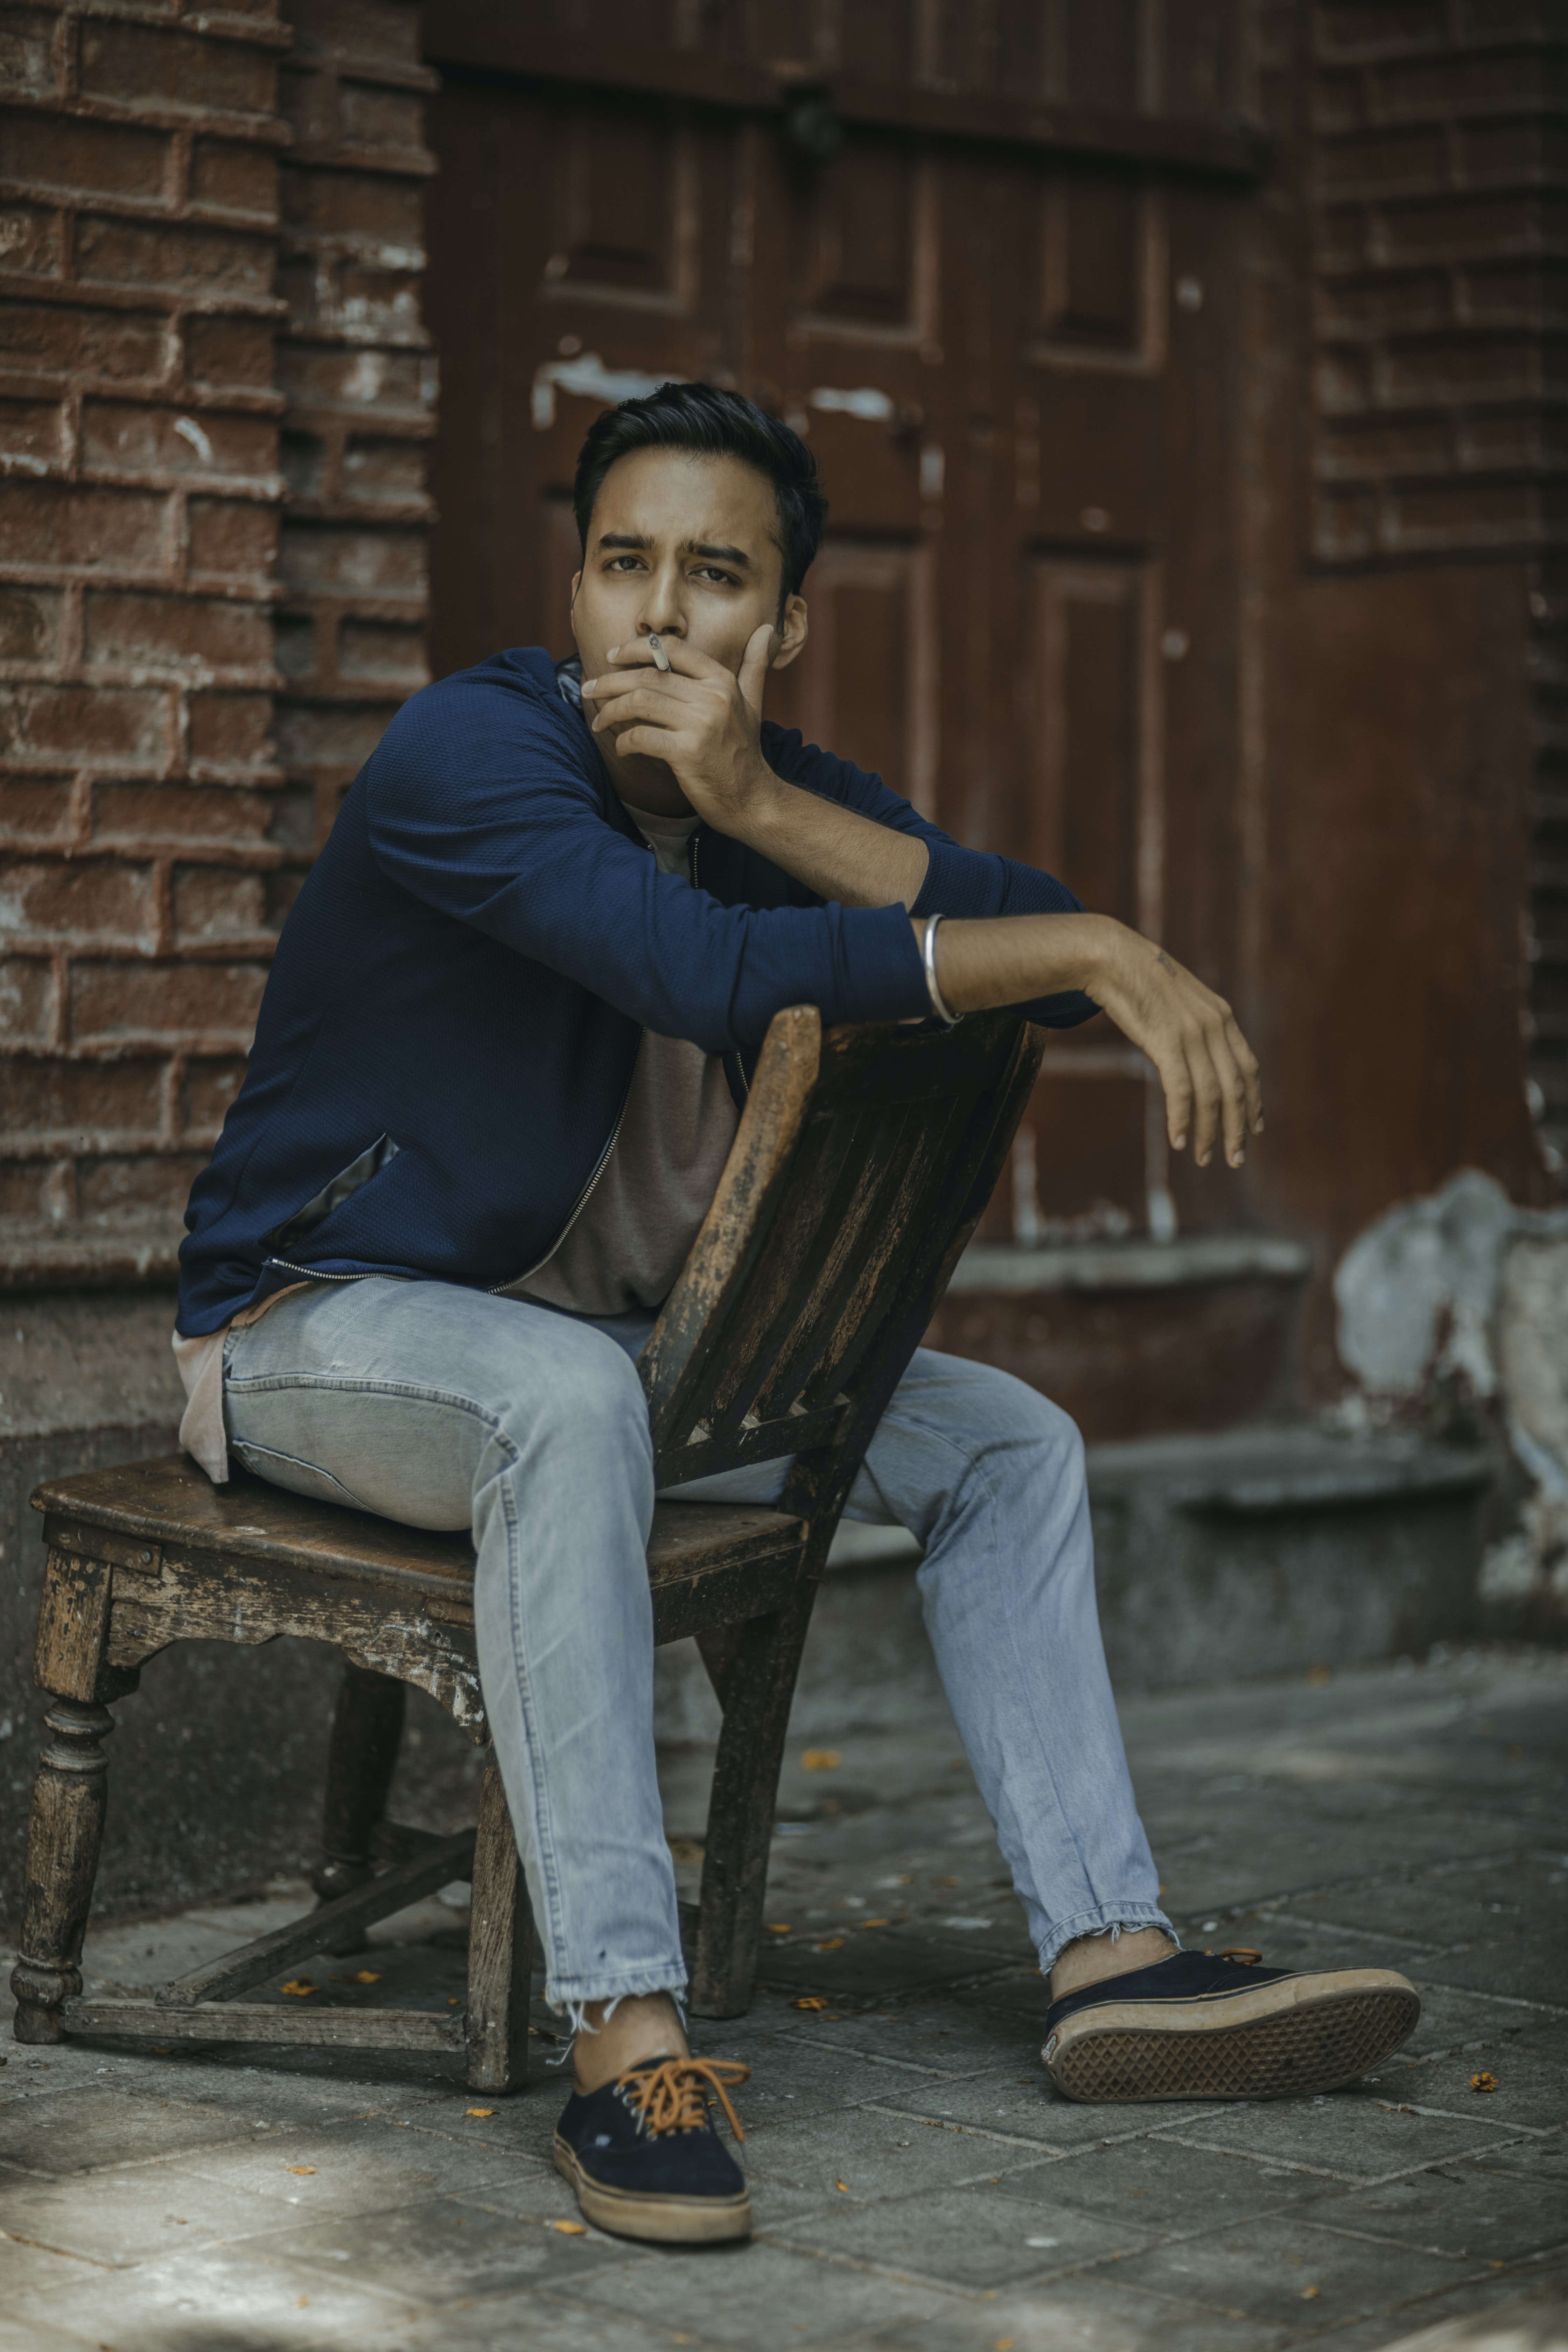 man in blue jacket smoking while sitting on chair near building